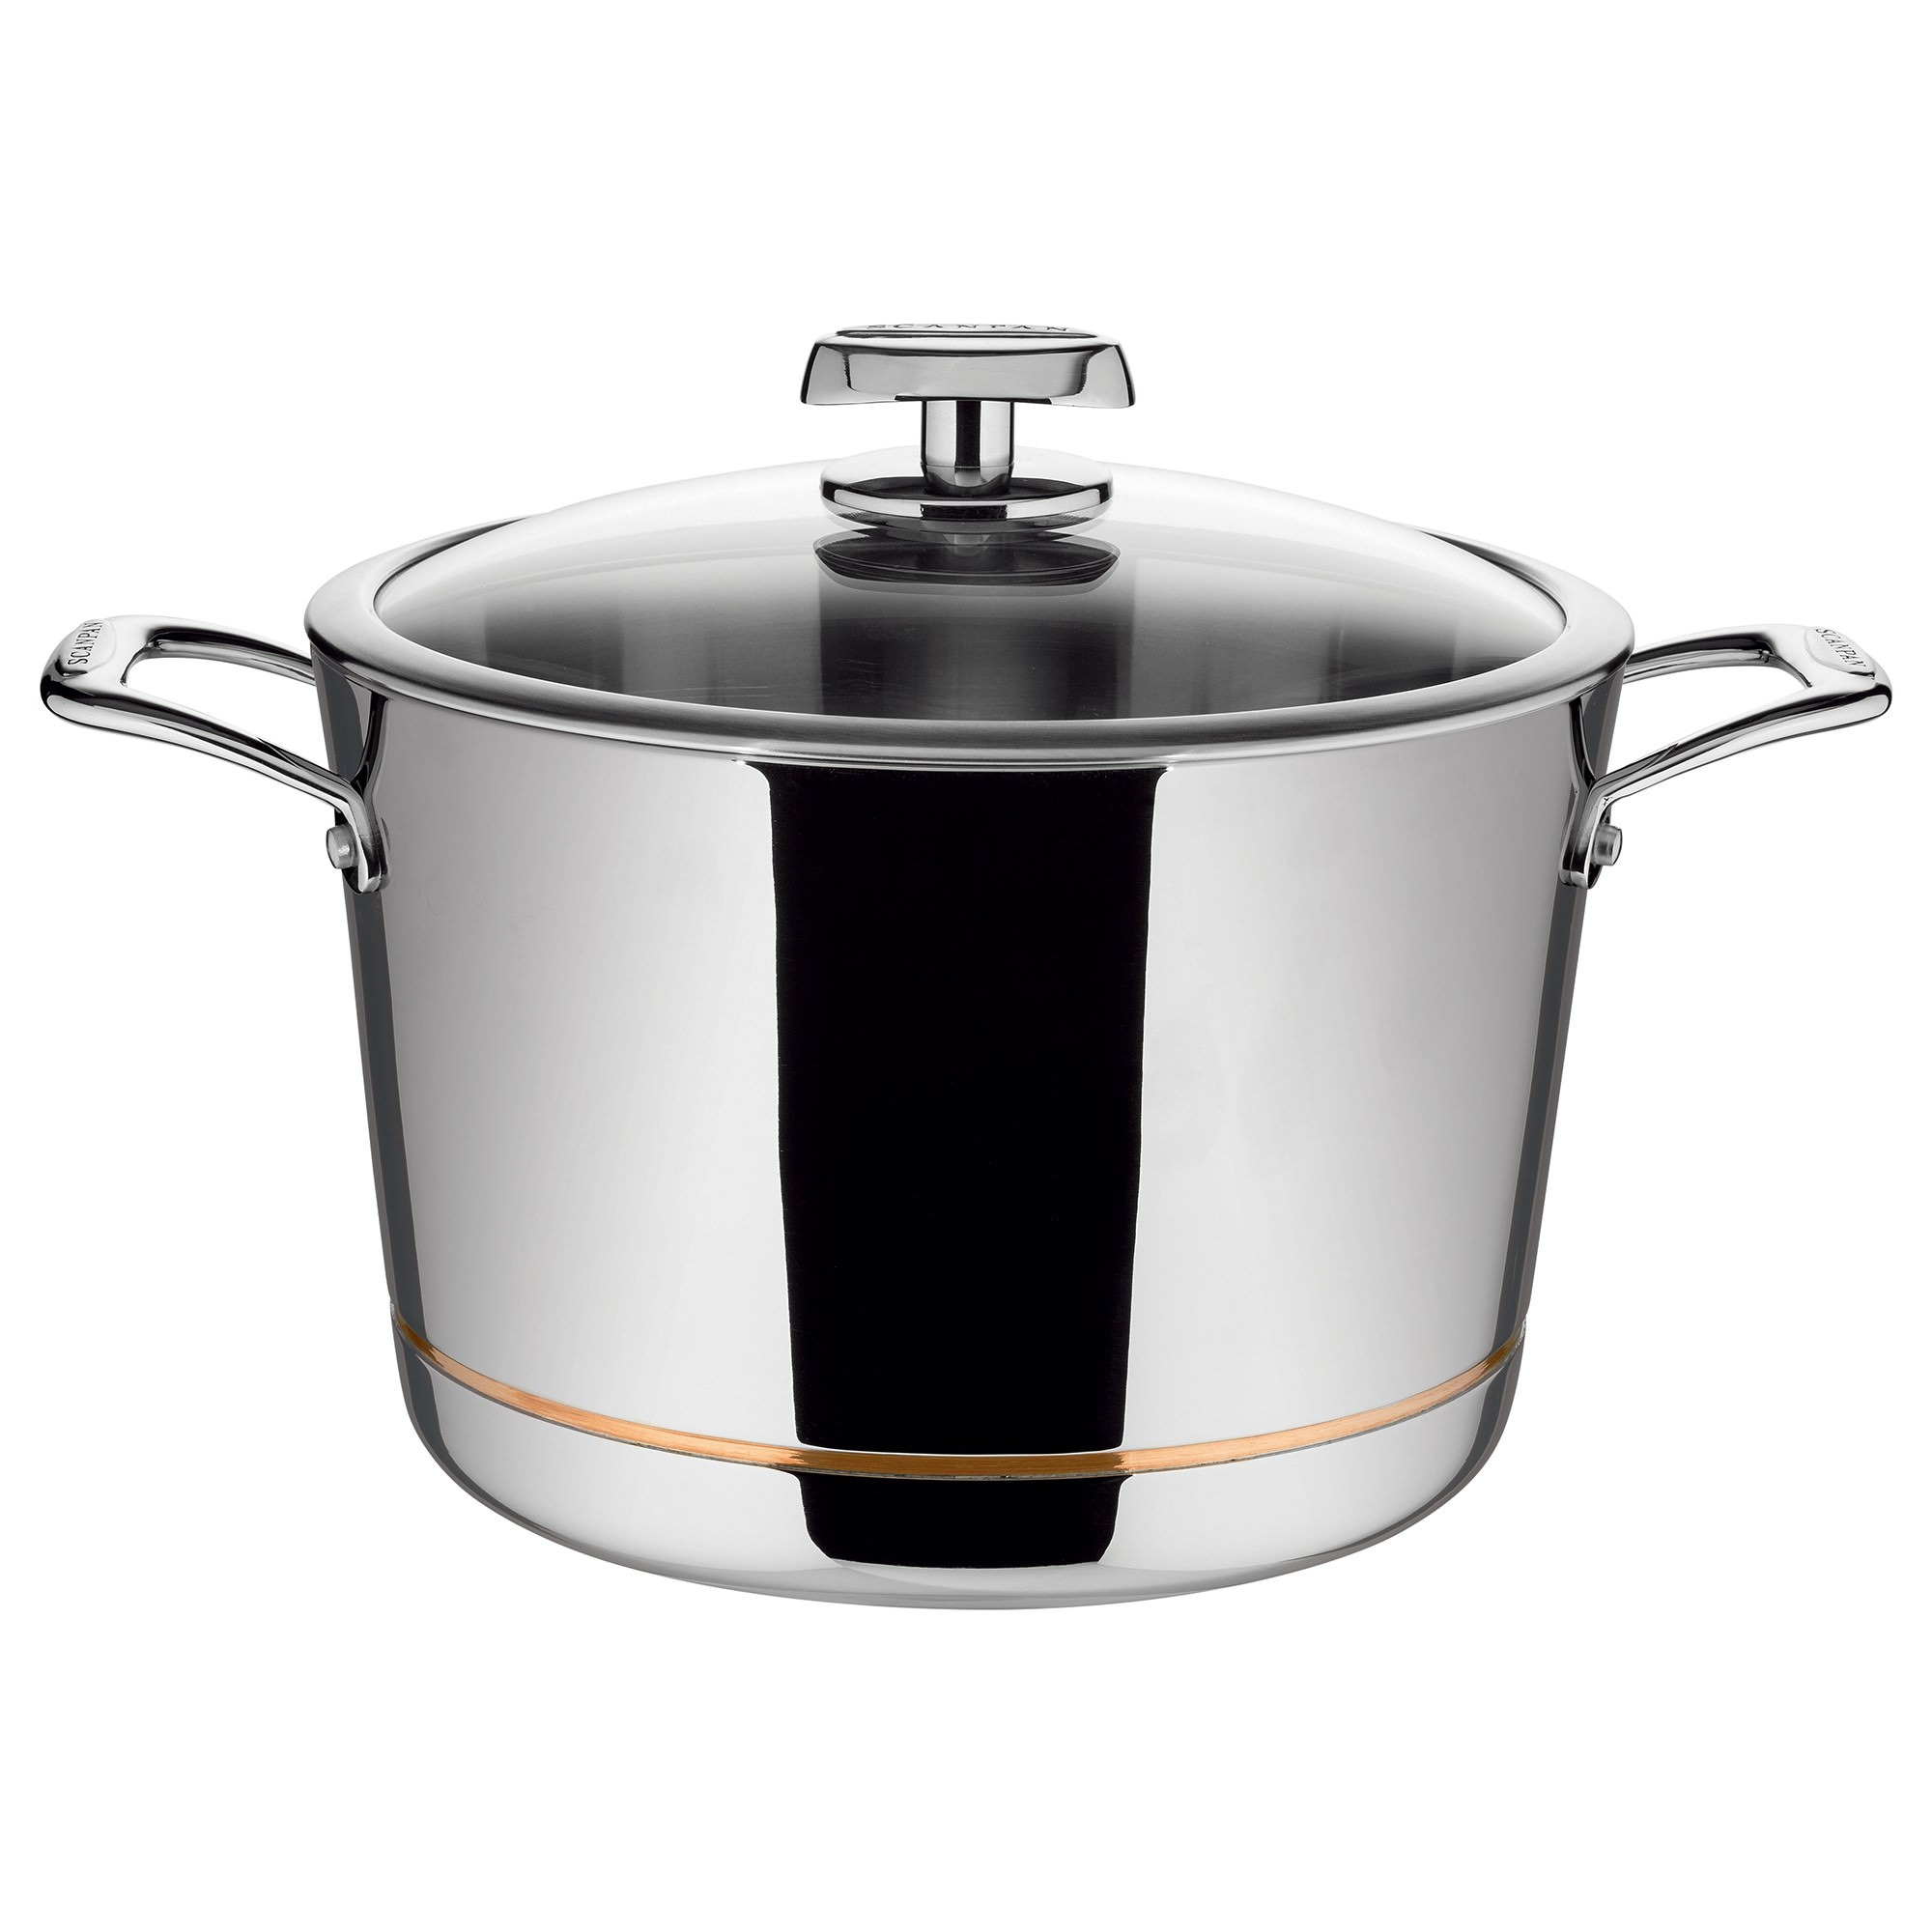 Scanpan Axis 26cm Stock Pot with Lid